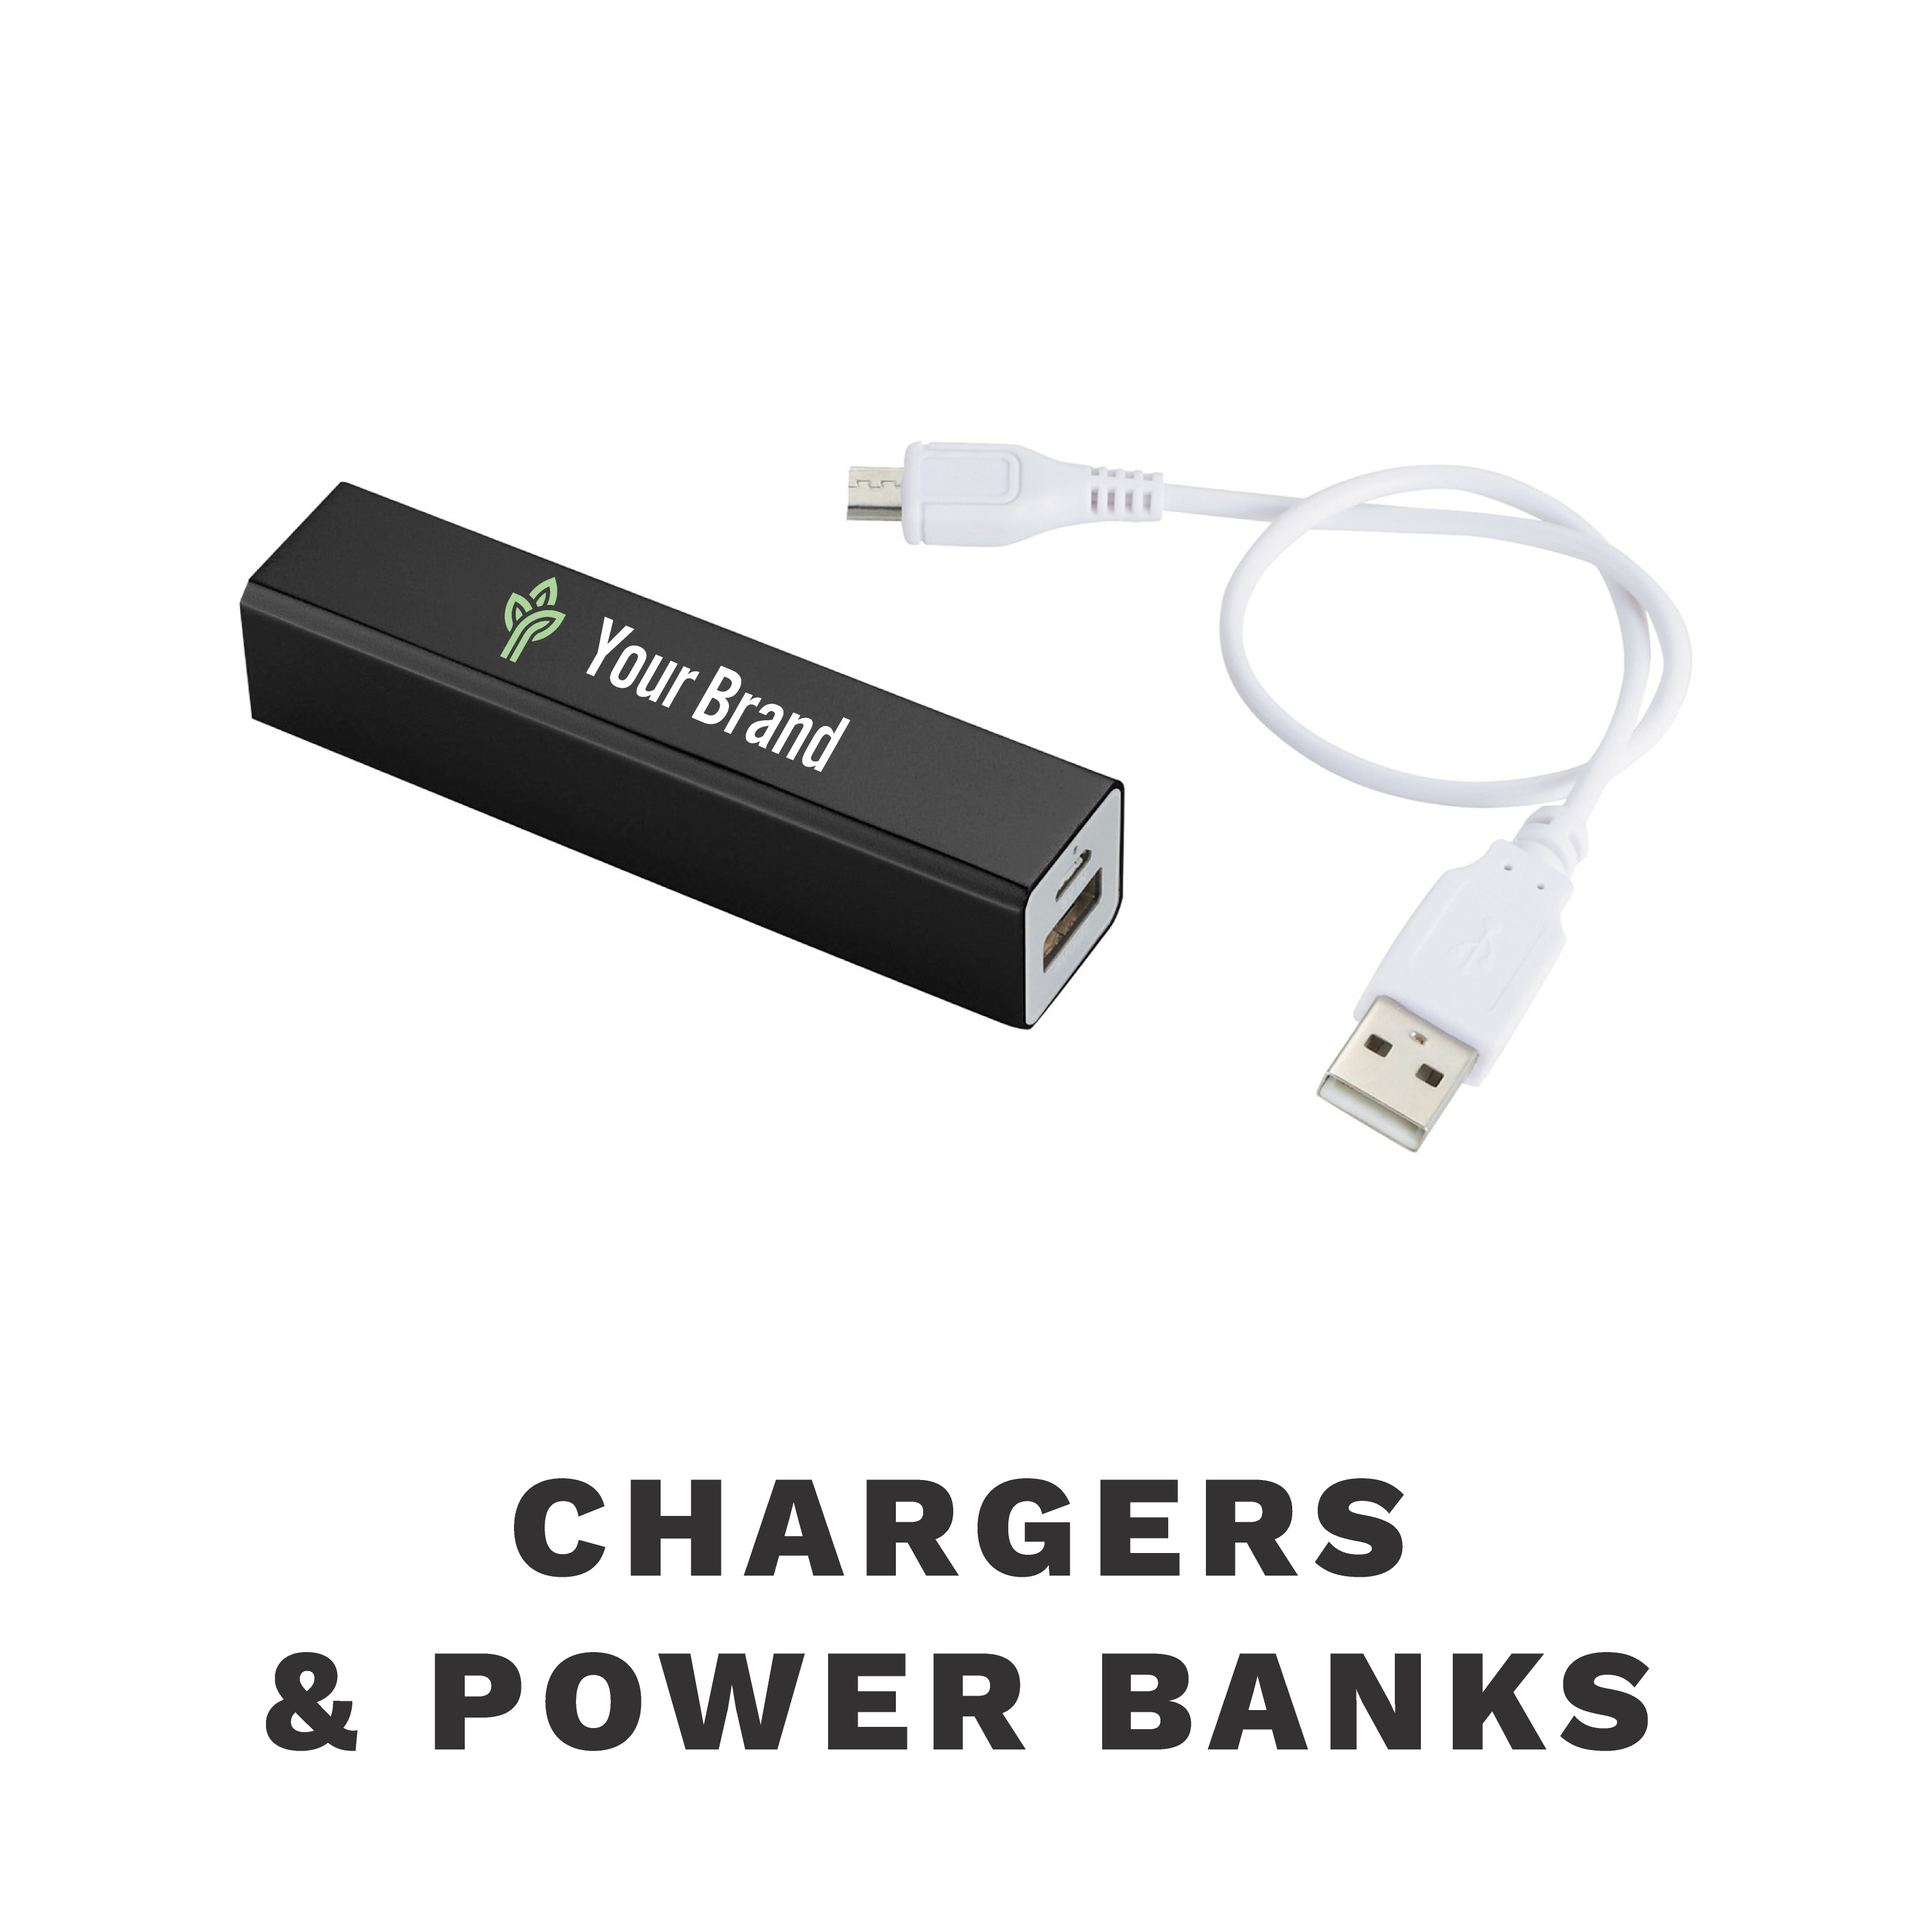 Your brand portable charger